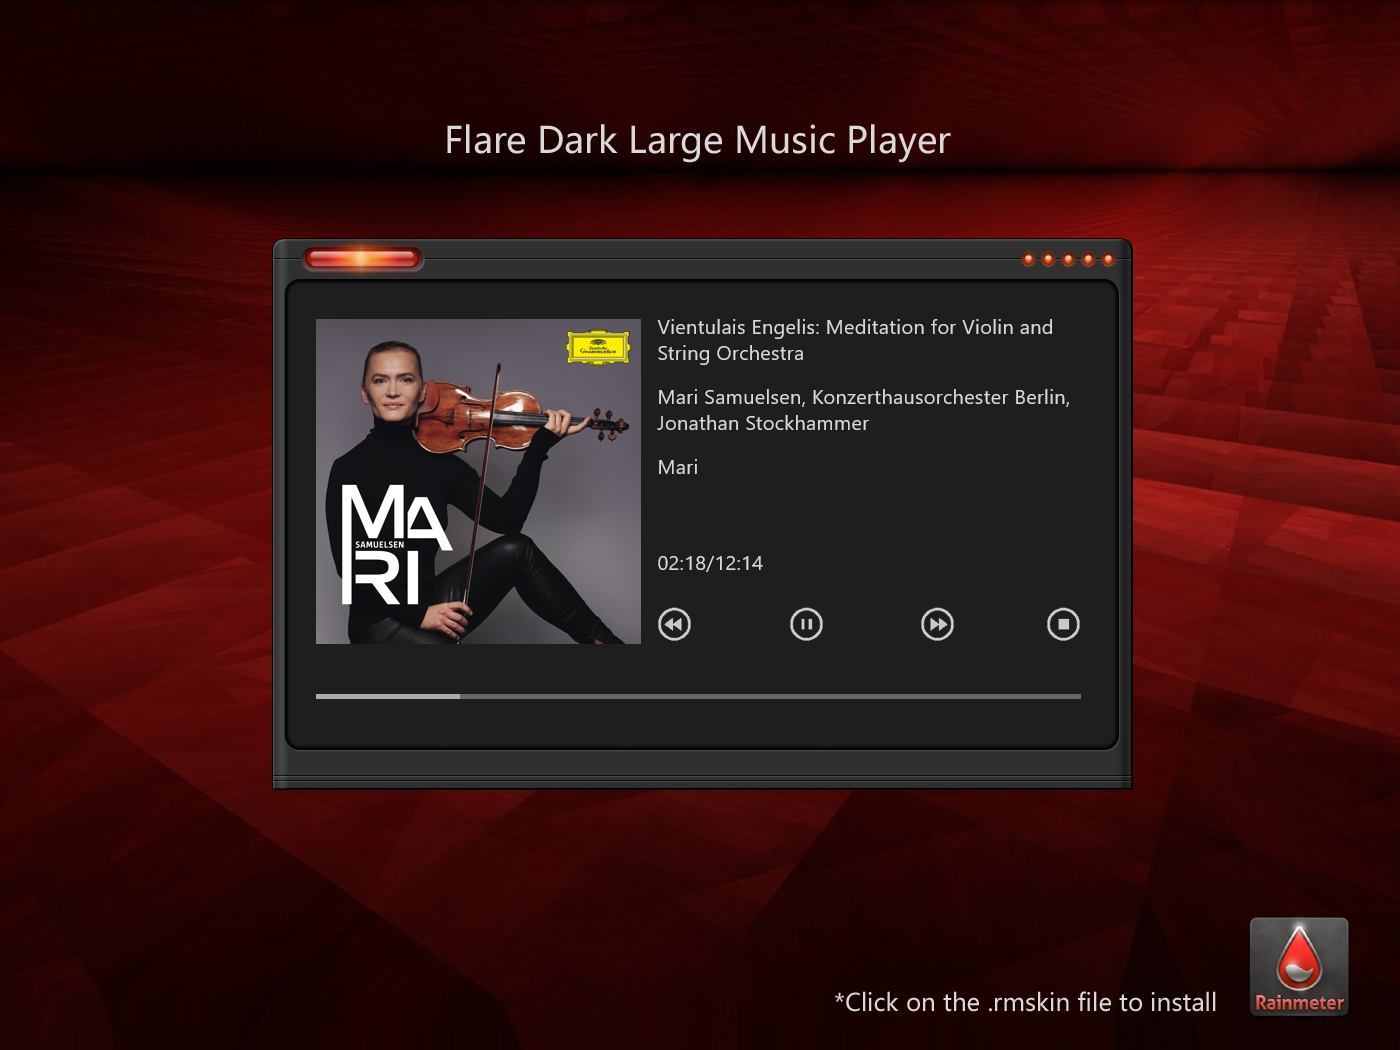 Flare Dark Large Music Player